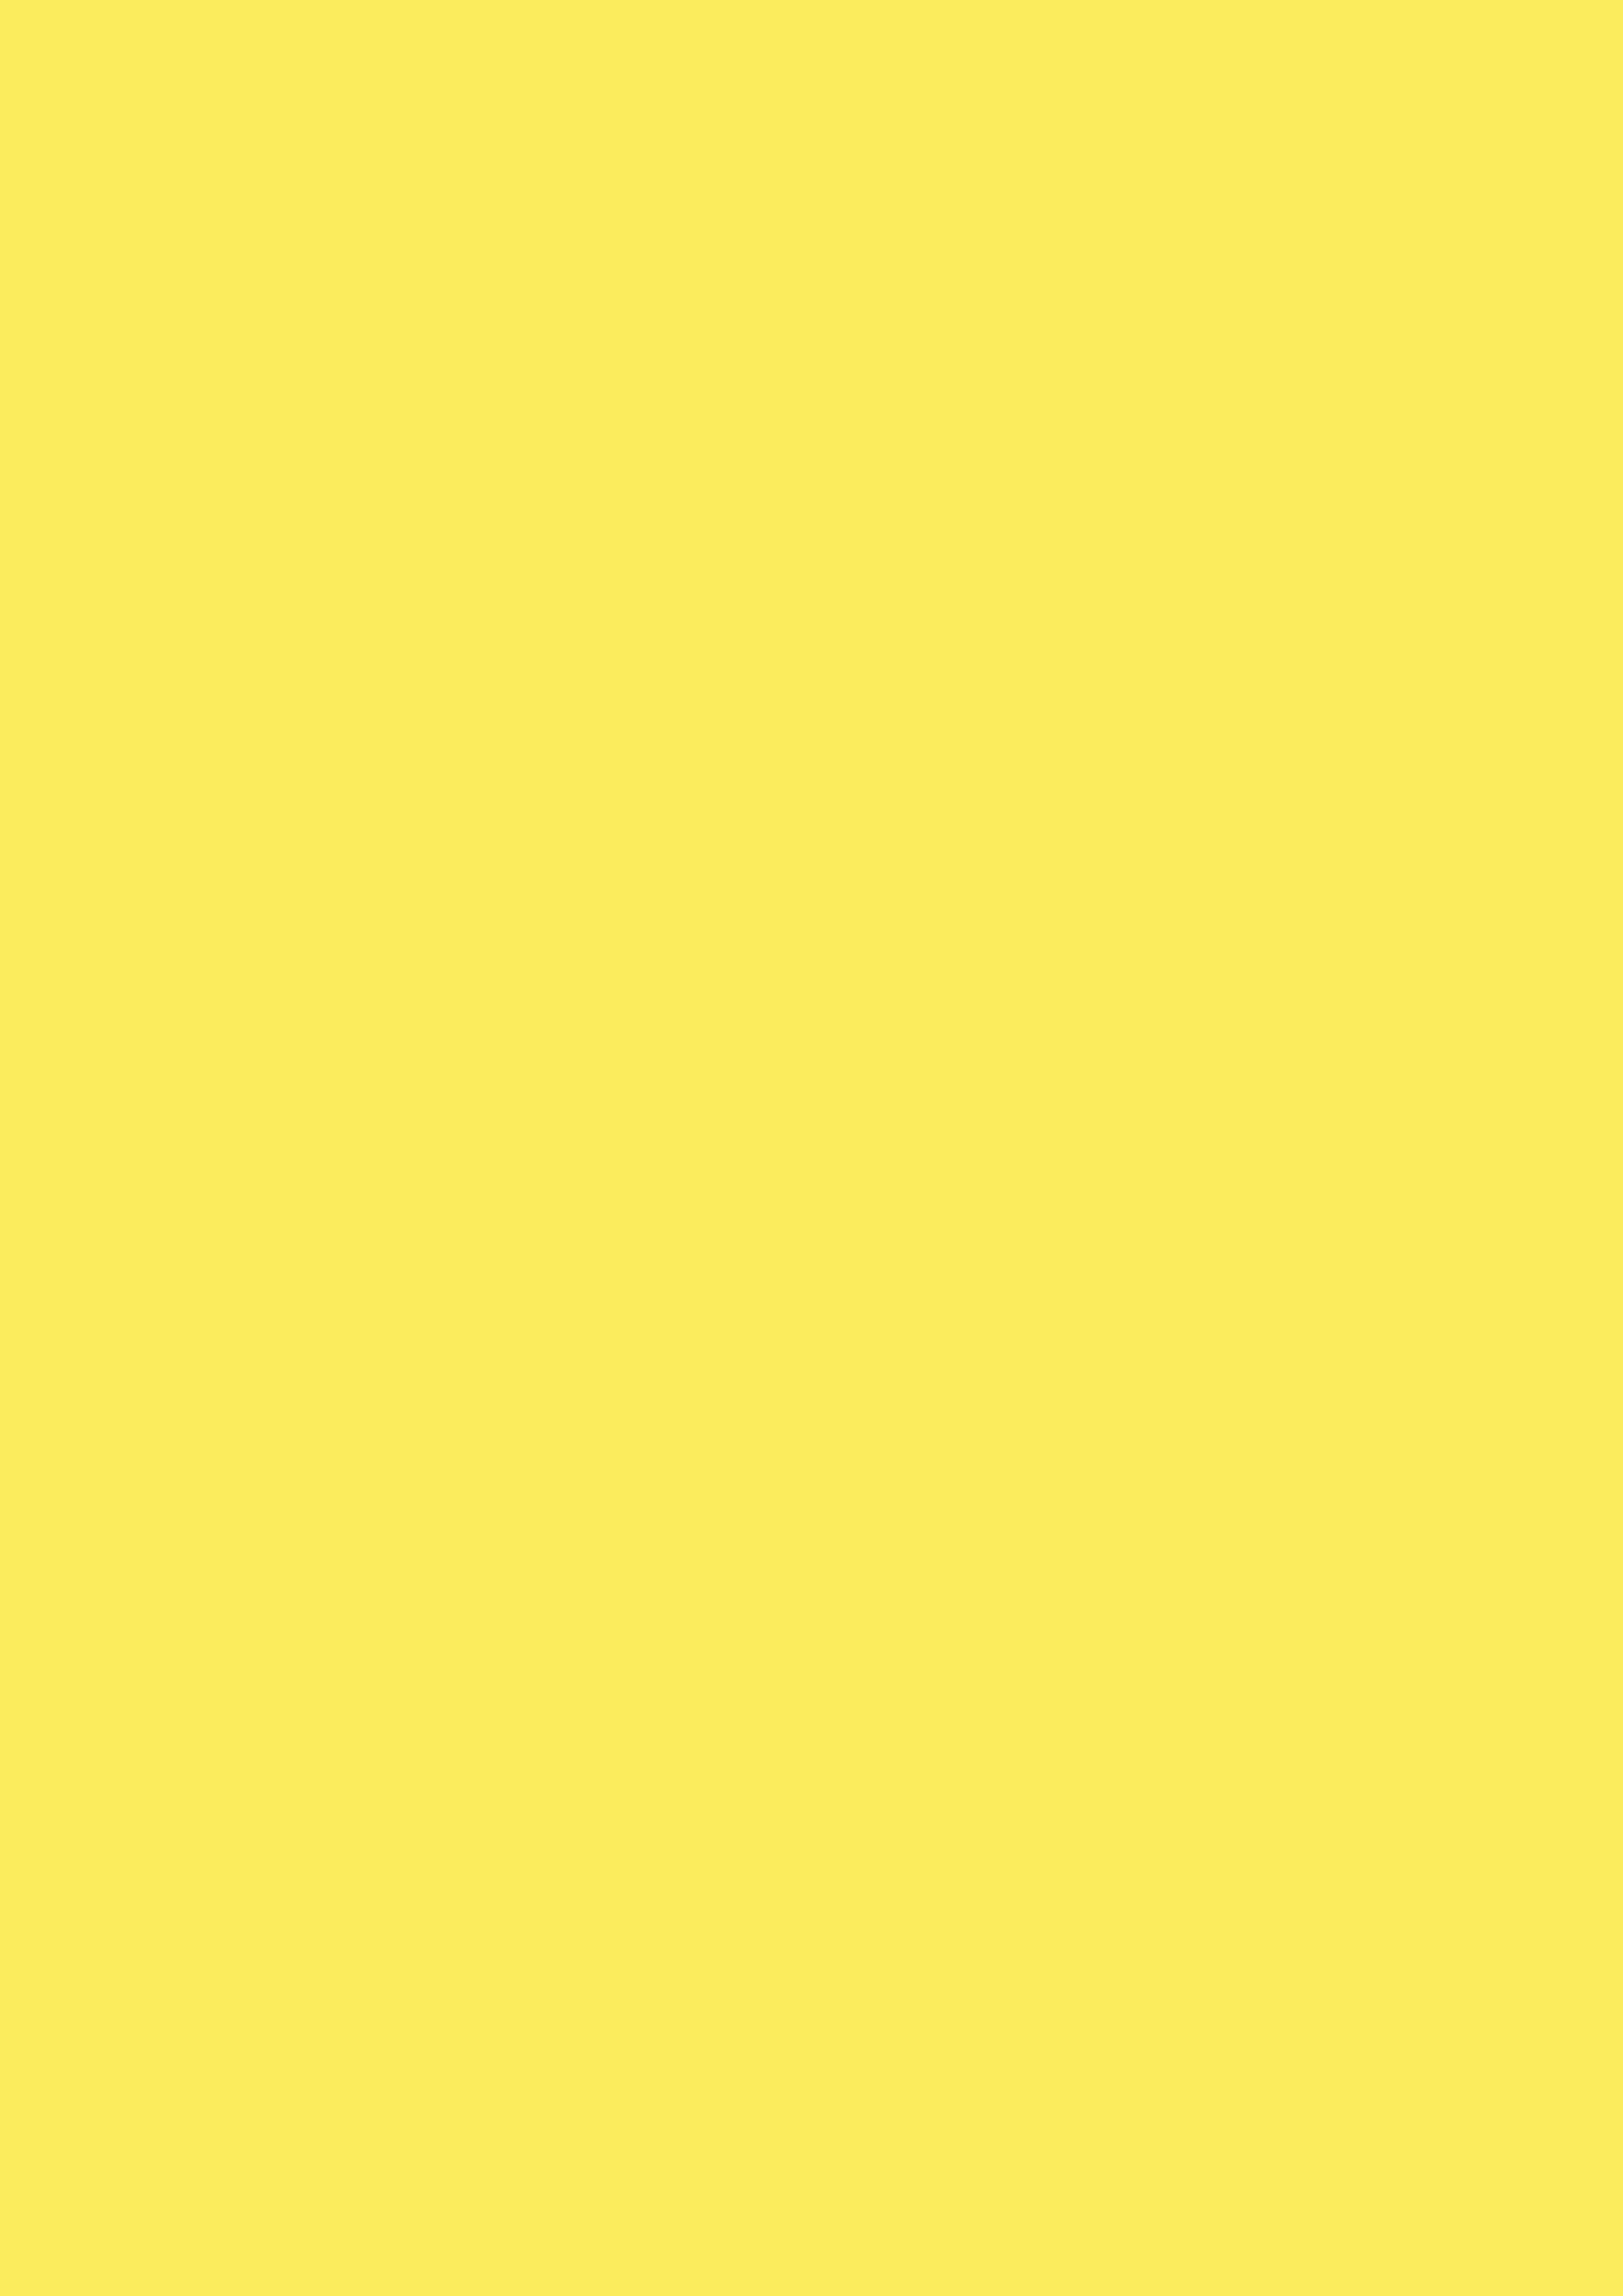 2480x3508 Maize Solid Color Background